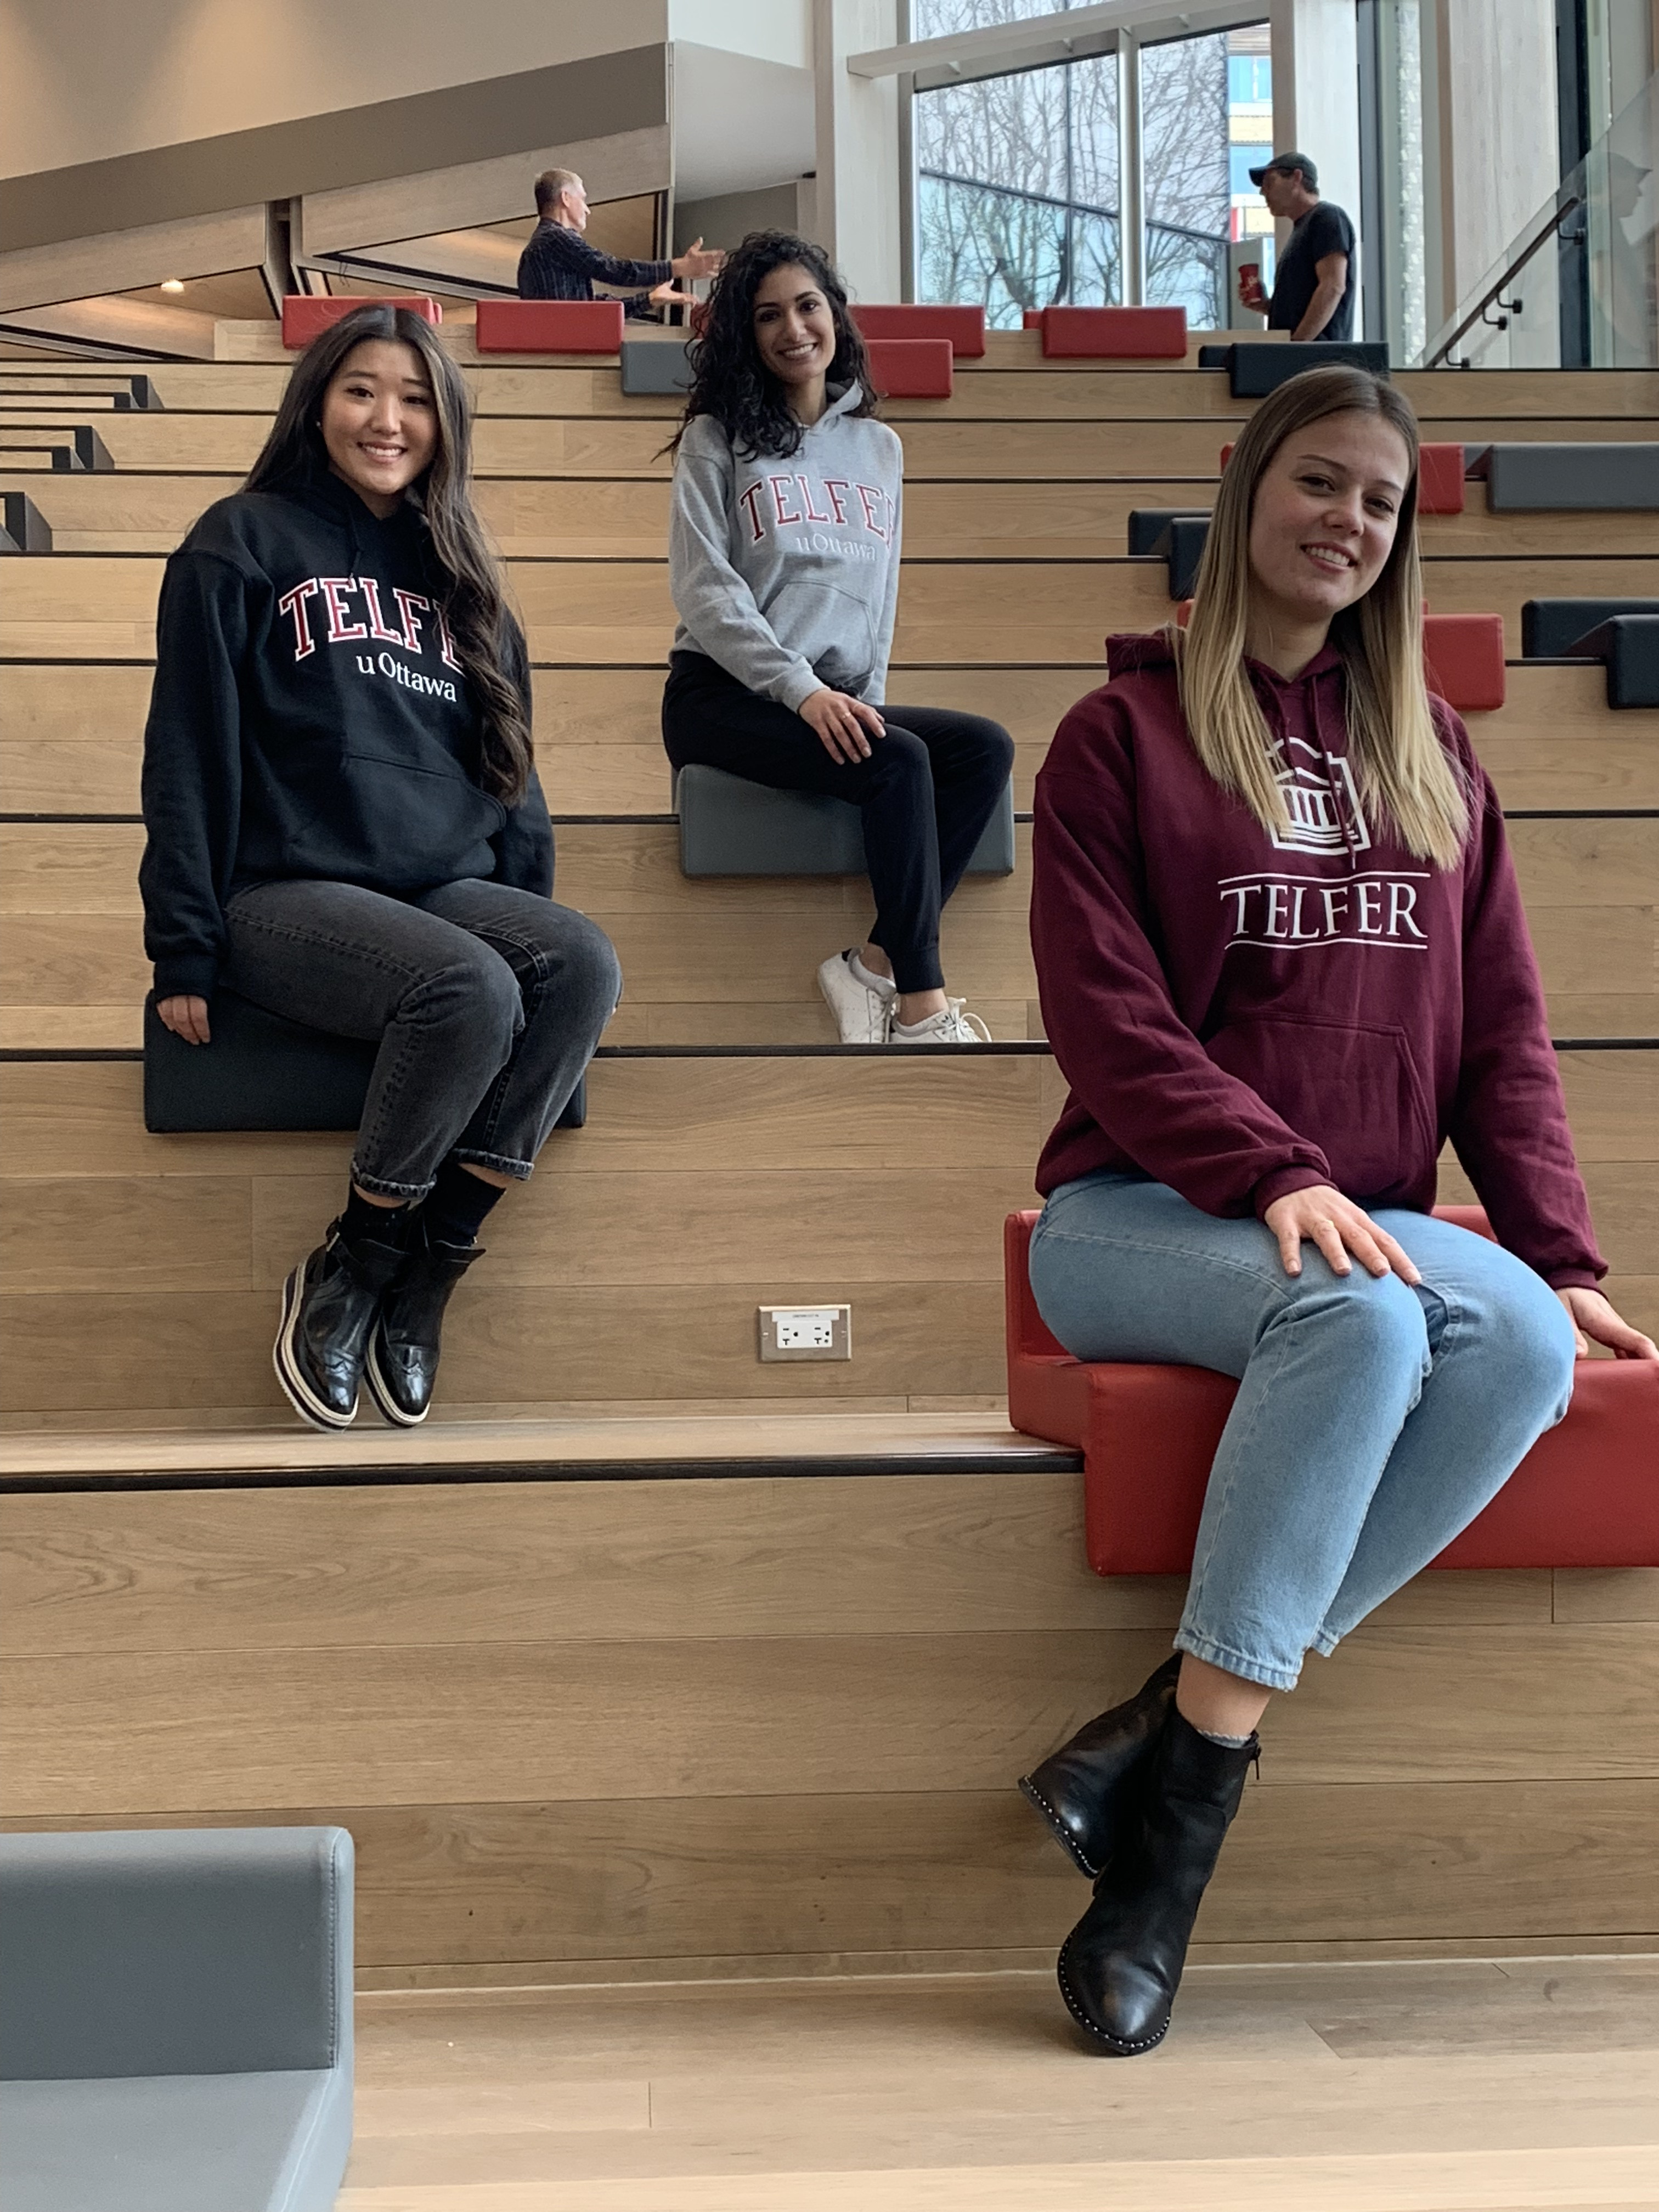 three Telfer students sitting on stairs smiling, wearing Telfer apparel